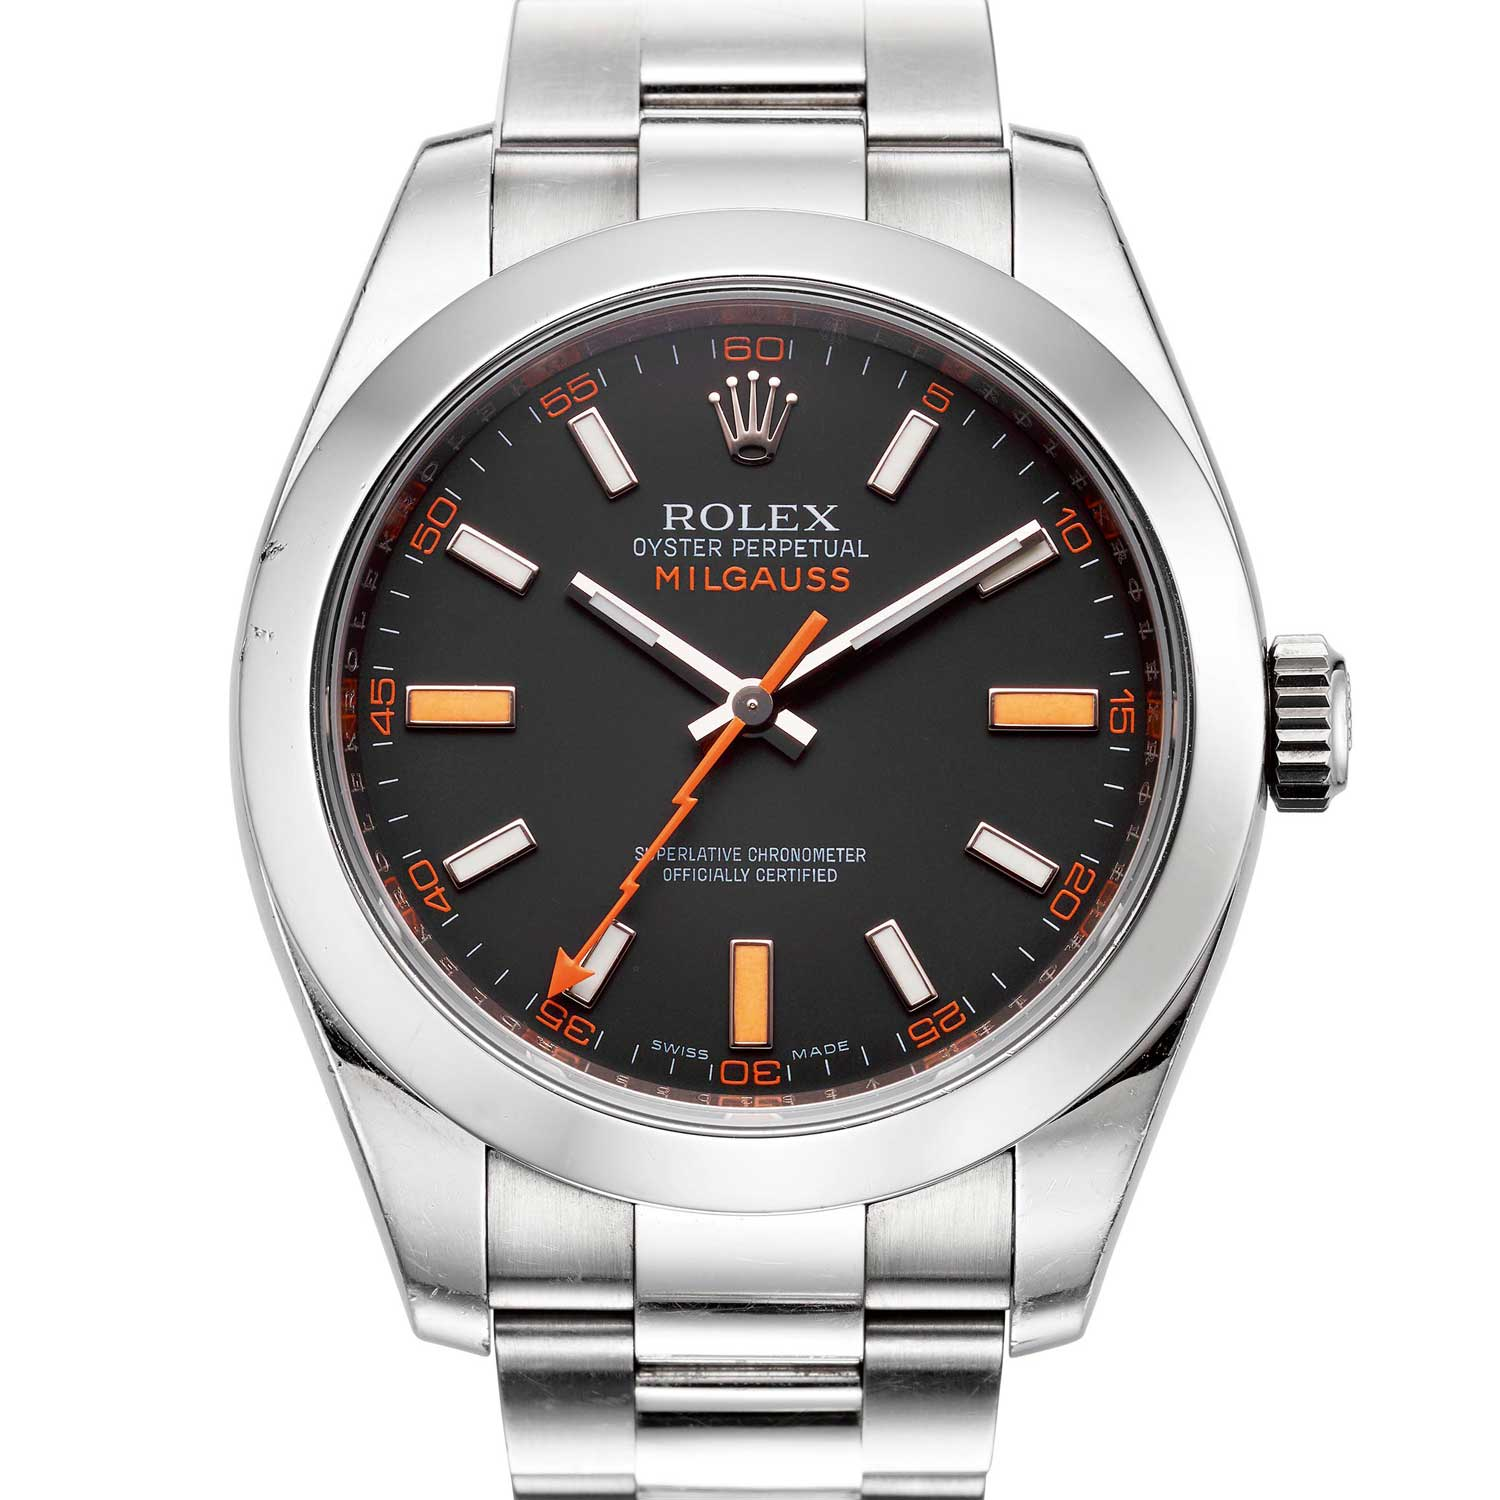 Rolex Milgauss Ref. 116400 with regular production black dial (Image: Christie's)